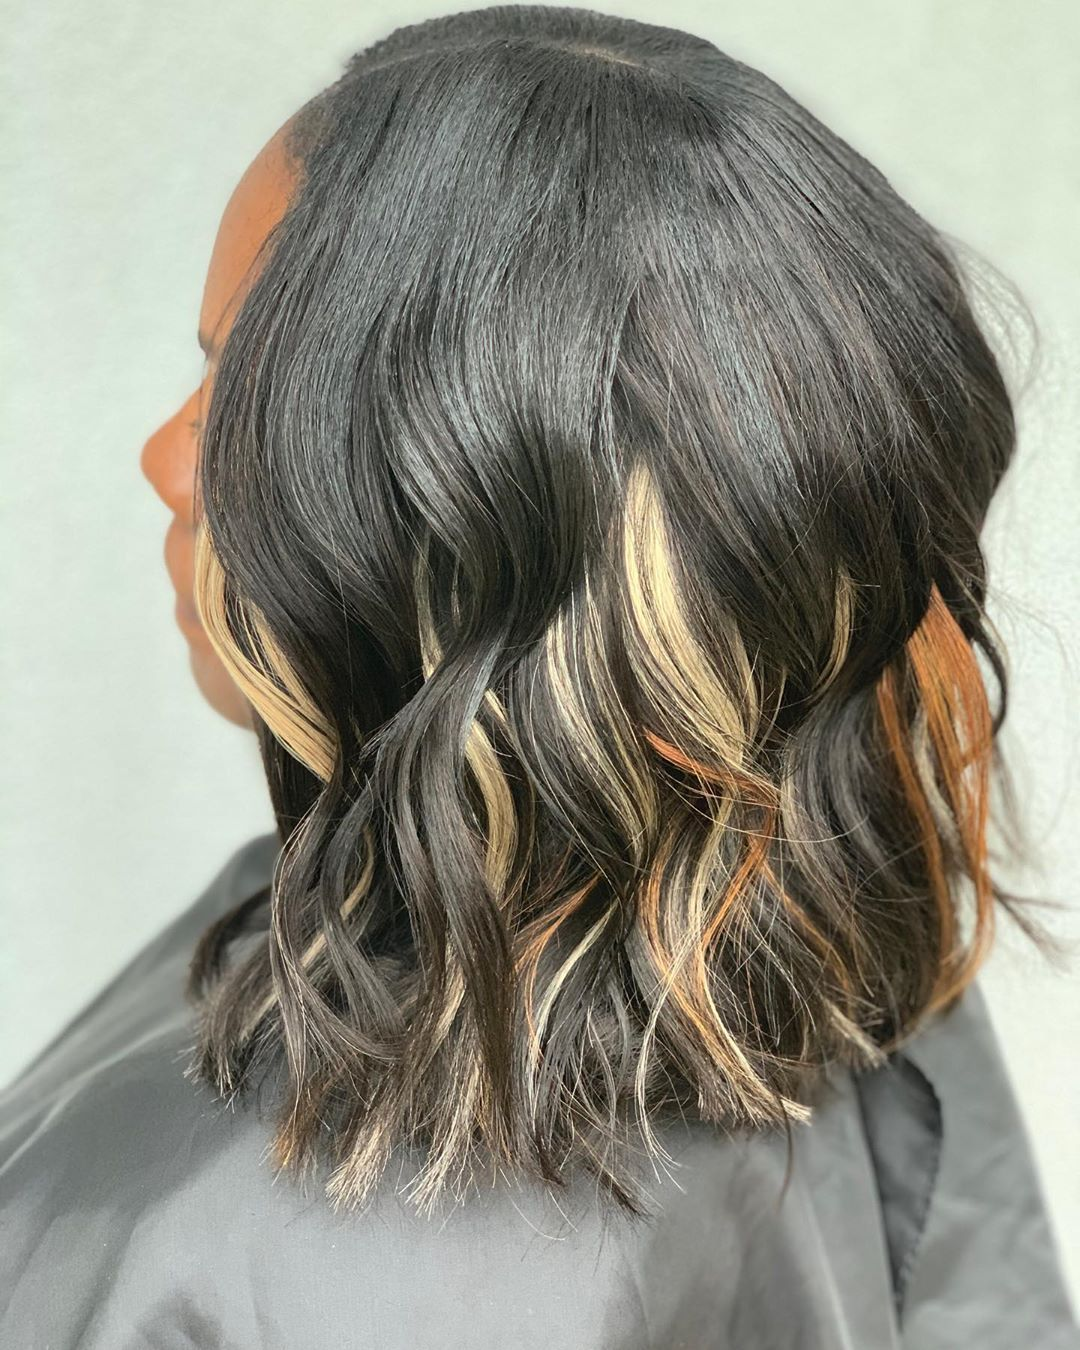 Come Thru Long Bob Quick Weave With Some Accent Pieces And Messy Beach Waves Hair Provides By Theartisanhairco Messy Beach Waves Hair Styles Long Bob